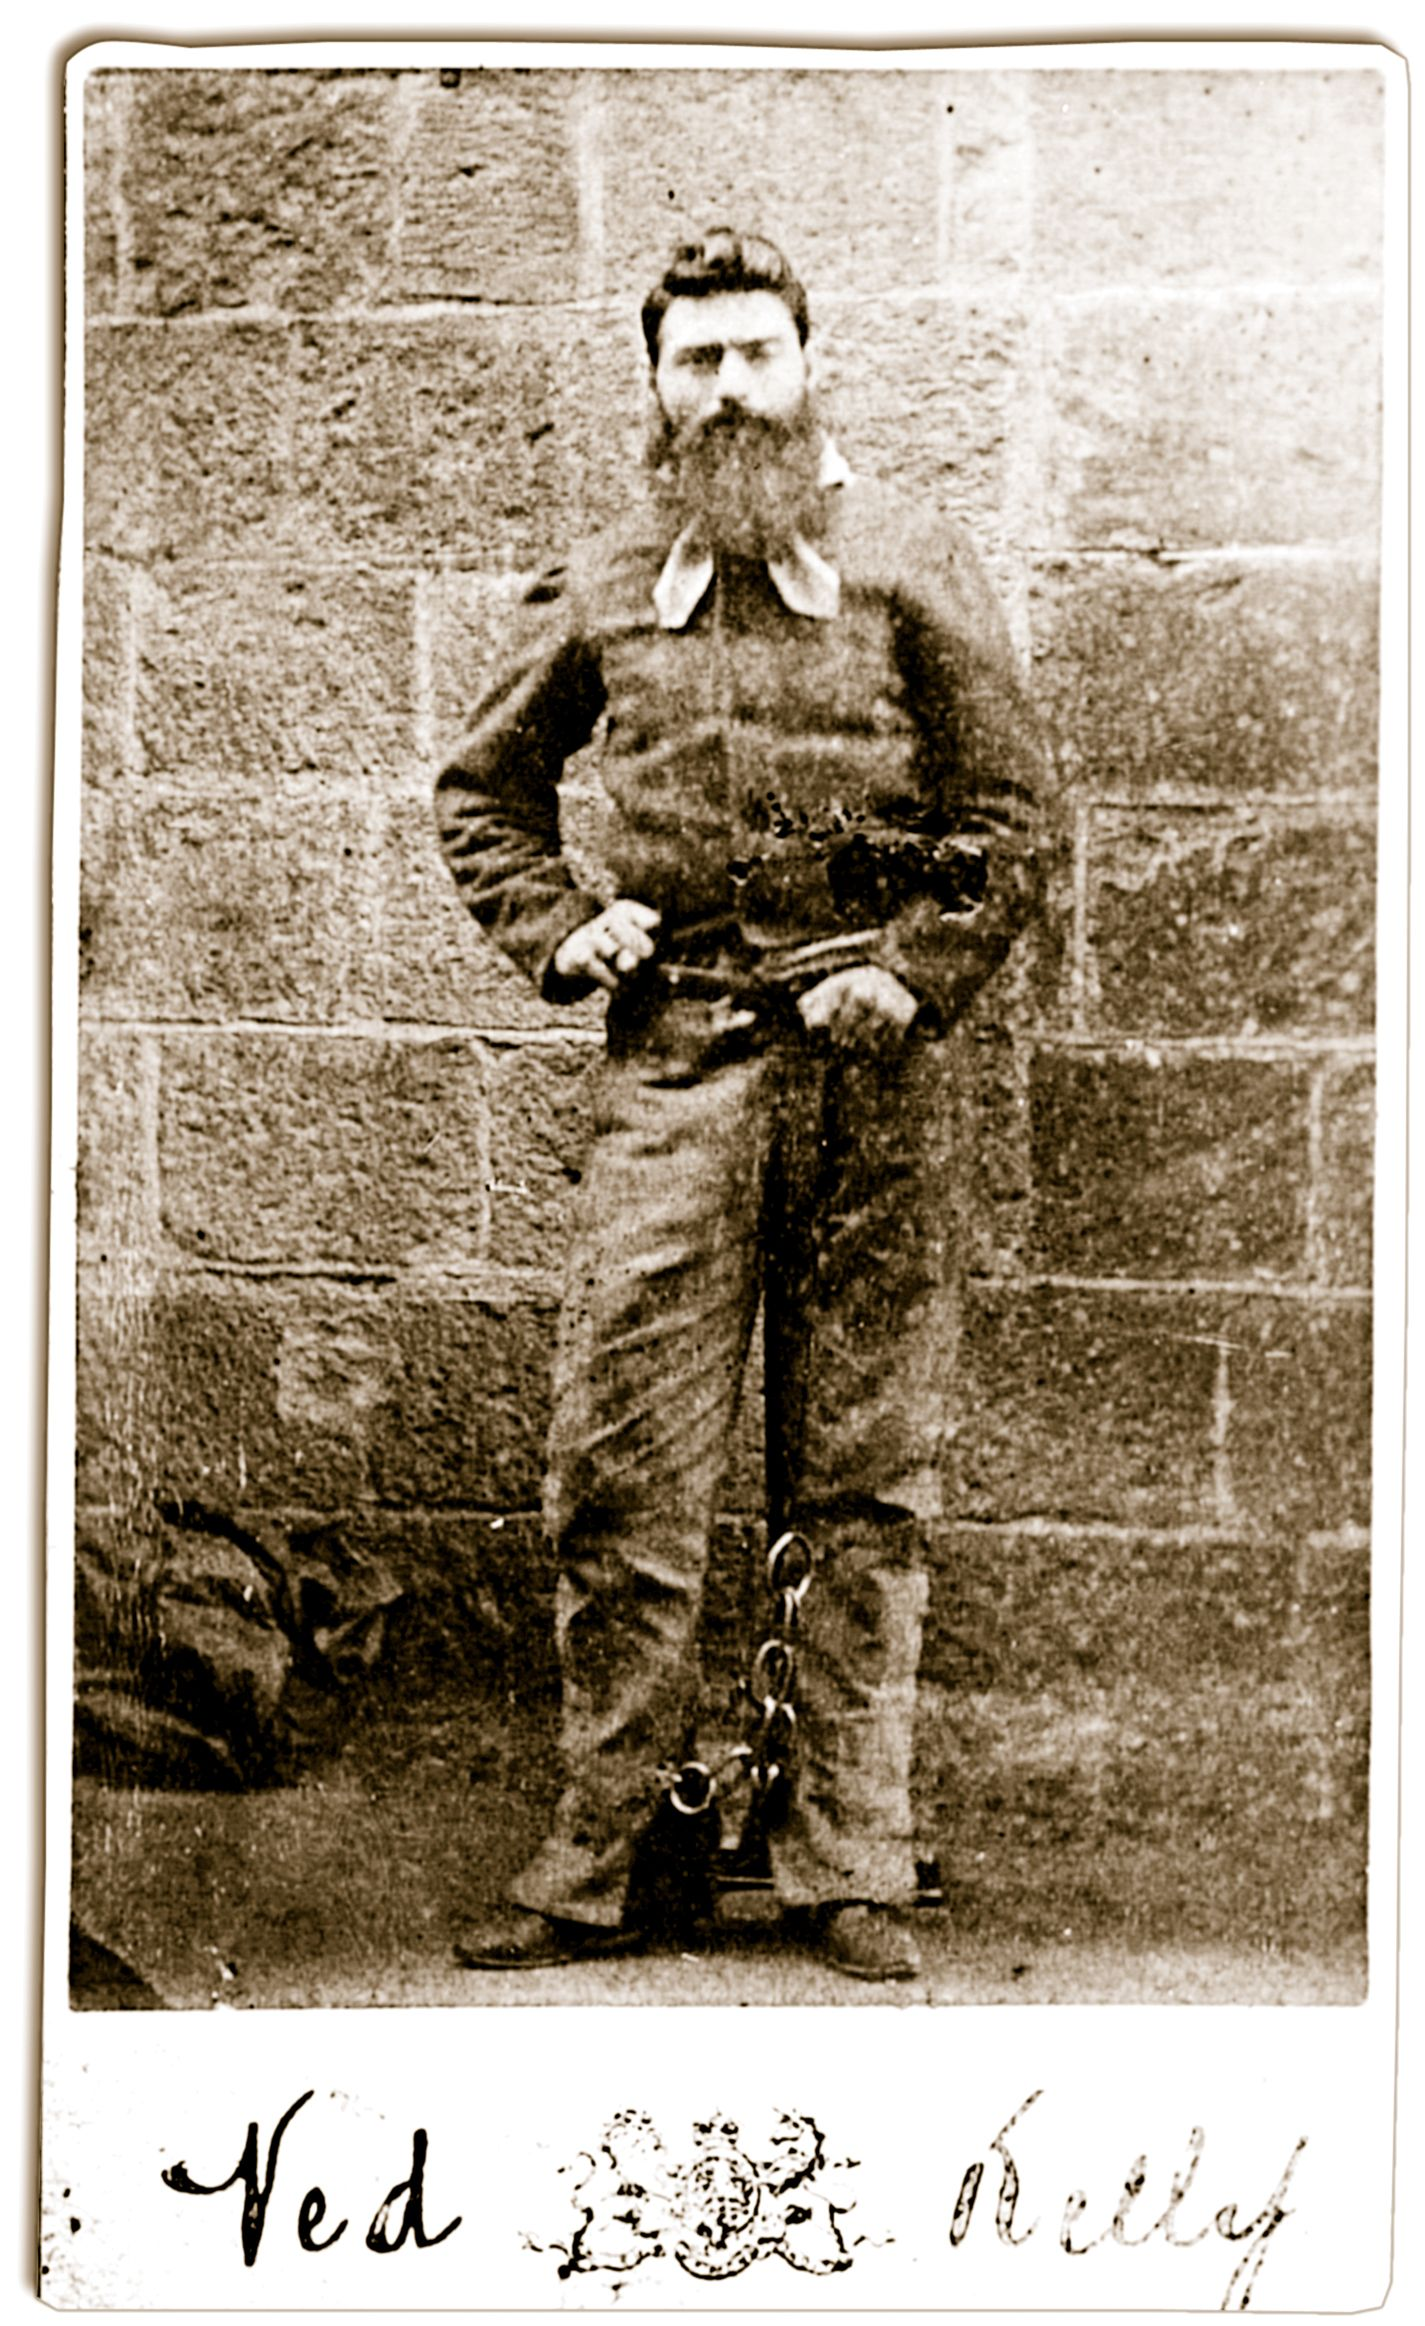 The Last Photos Of Ned Kelly Were Taken By The Official Melbourne  The Last Photos Of Ned Kelly Were Taken By The Official Melbourne Gaol  Photographer Charles Nettleton On November   The Day Before Neds  Execution How To Write A Proposal Essay also Essay About Health  Bullying Essay Thesis